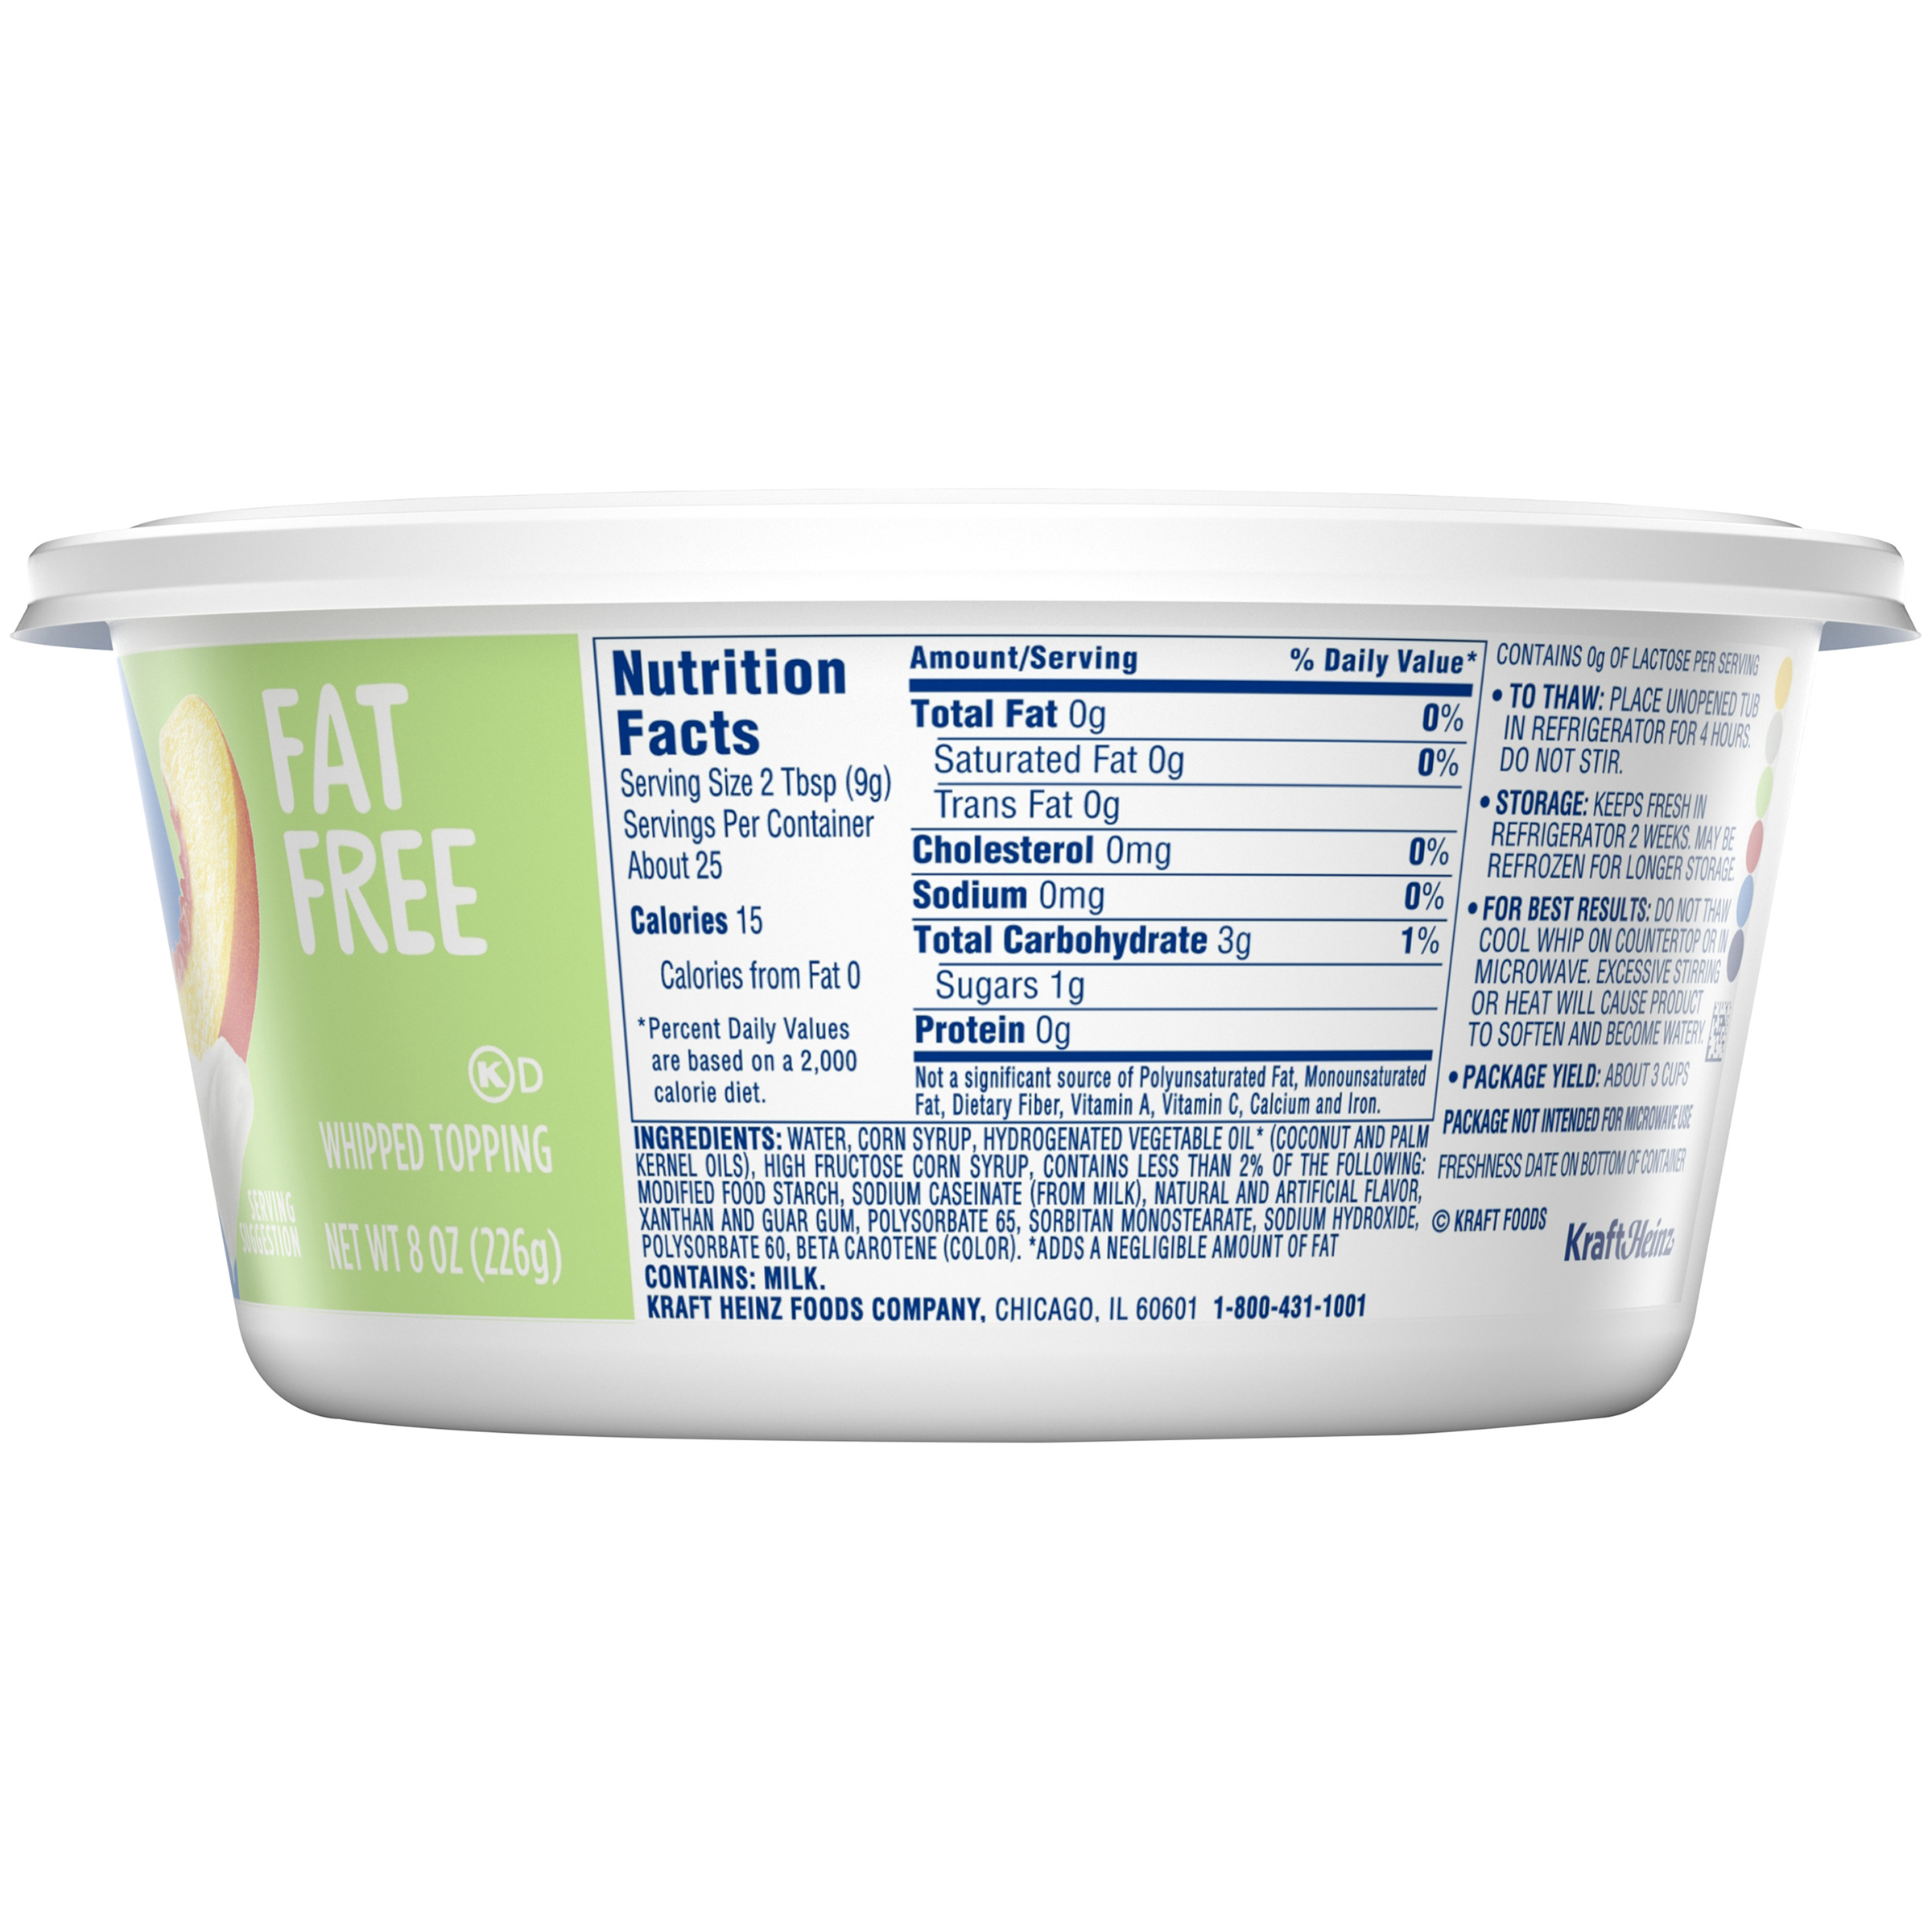 Cool Whip Fat Free Whipped Topping 8 Oz Tub Walmart Com